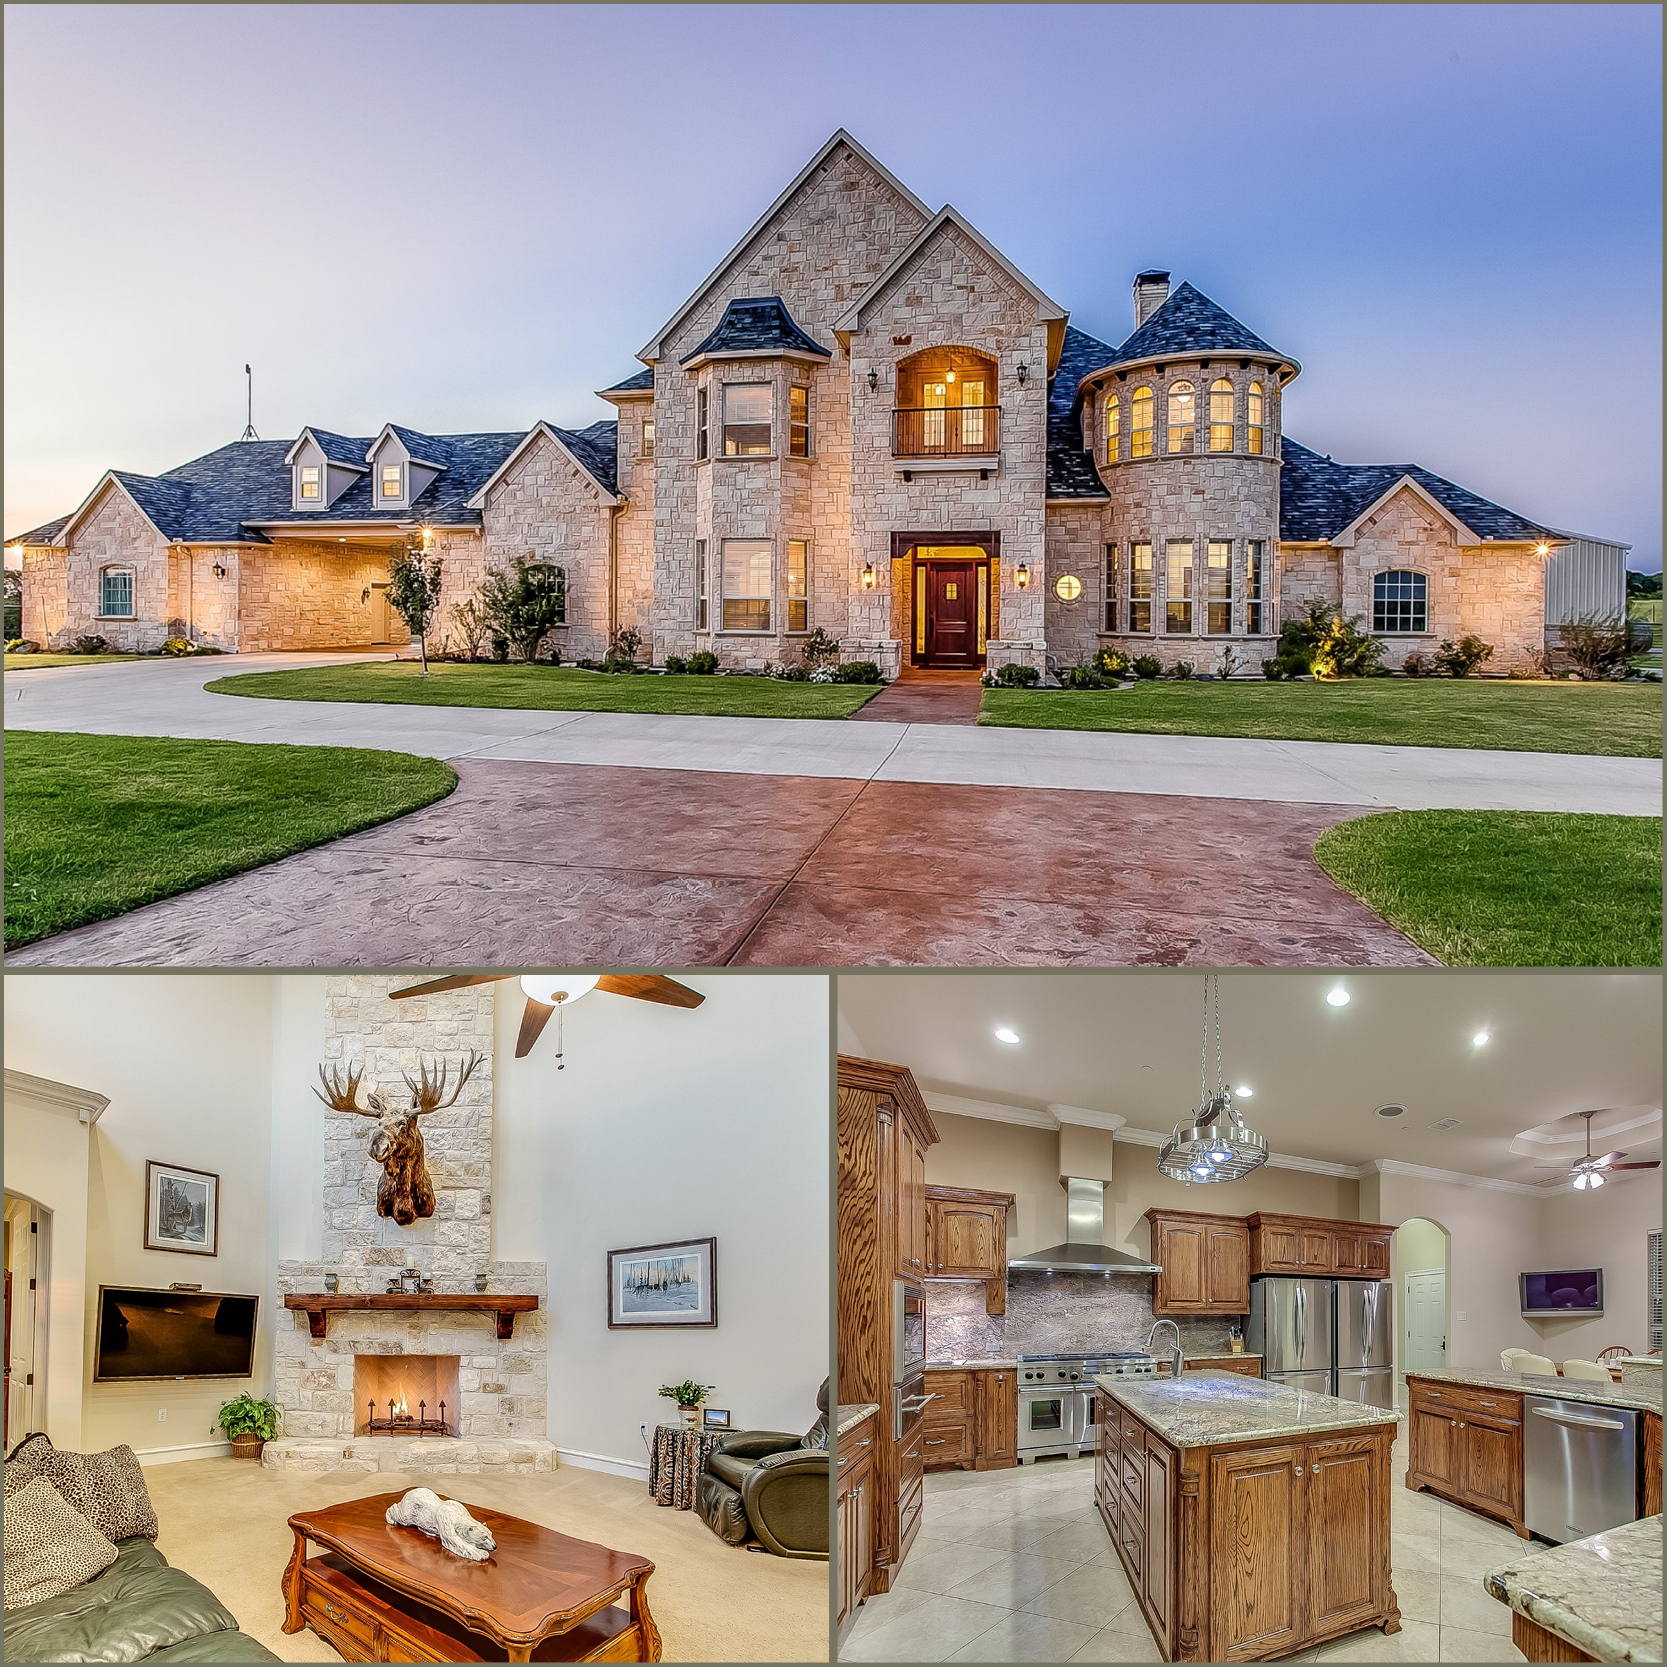 What $2 Million Gets You in DFW